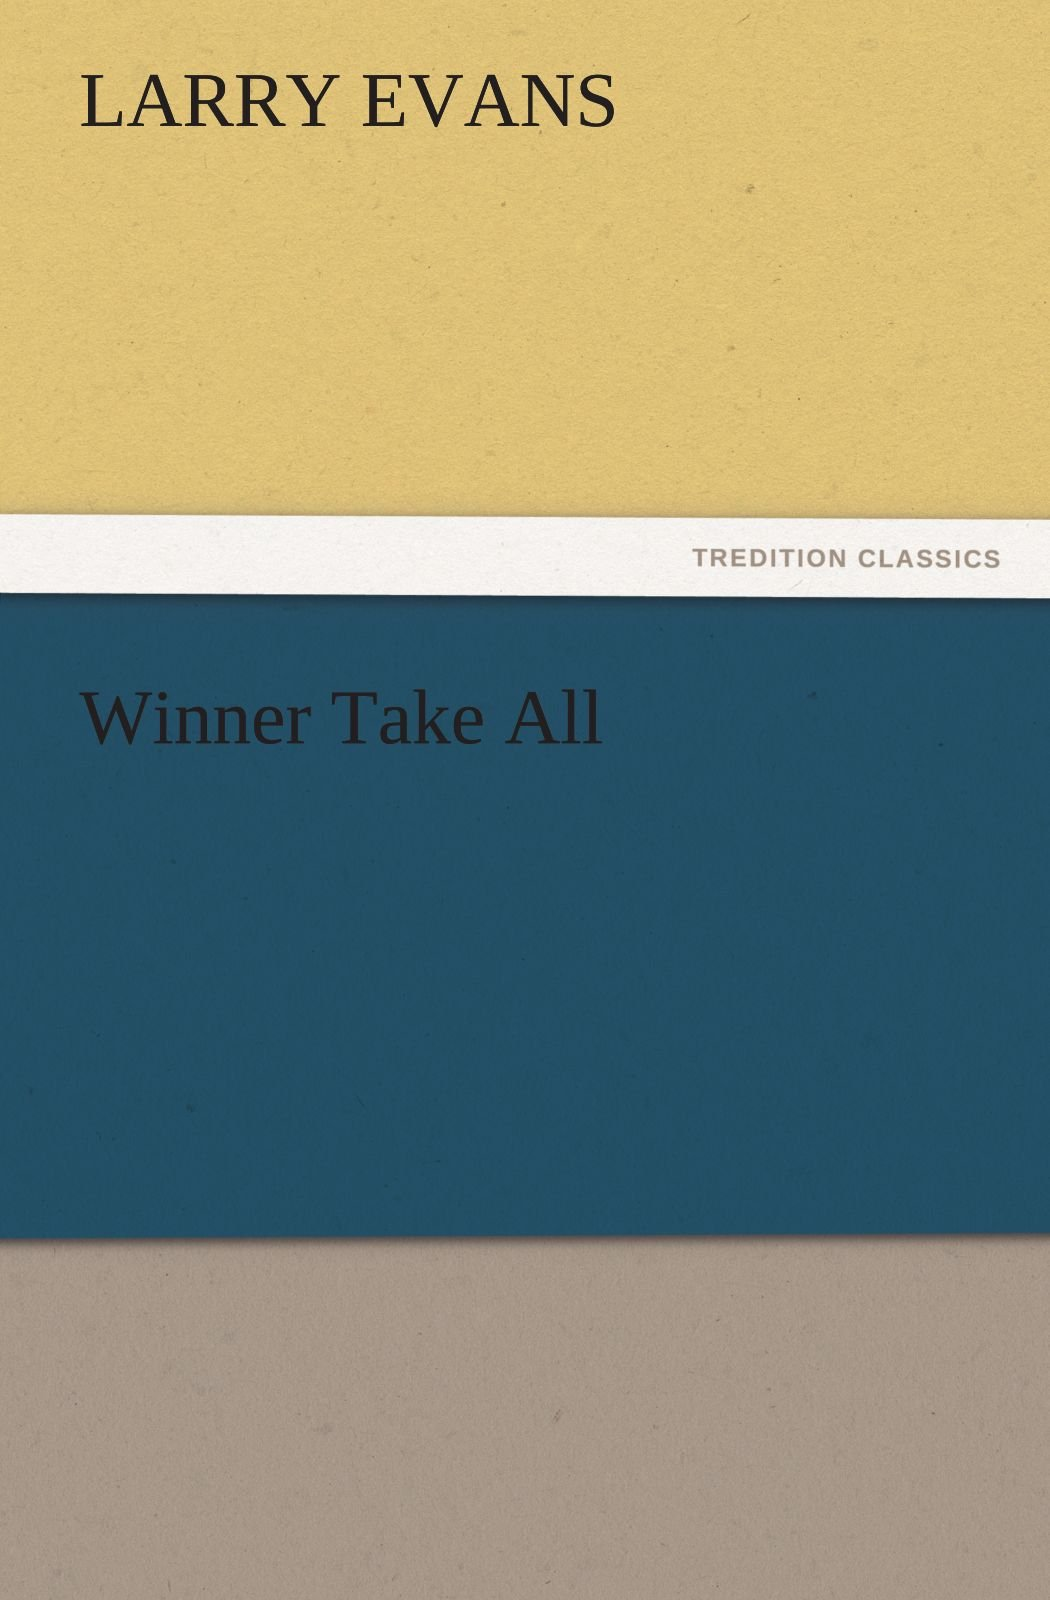 Download Winner Take All (TREDITION CLASSICS) PDF